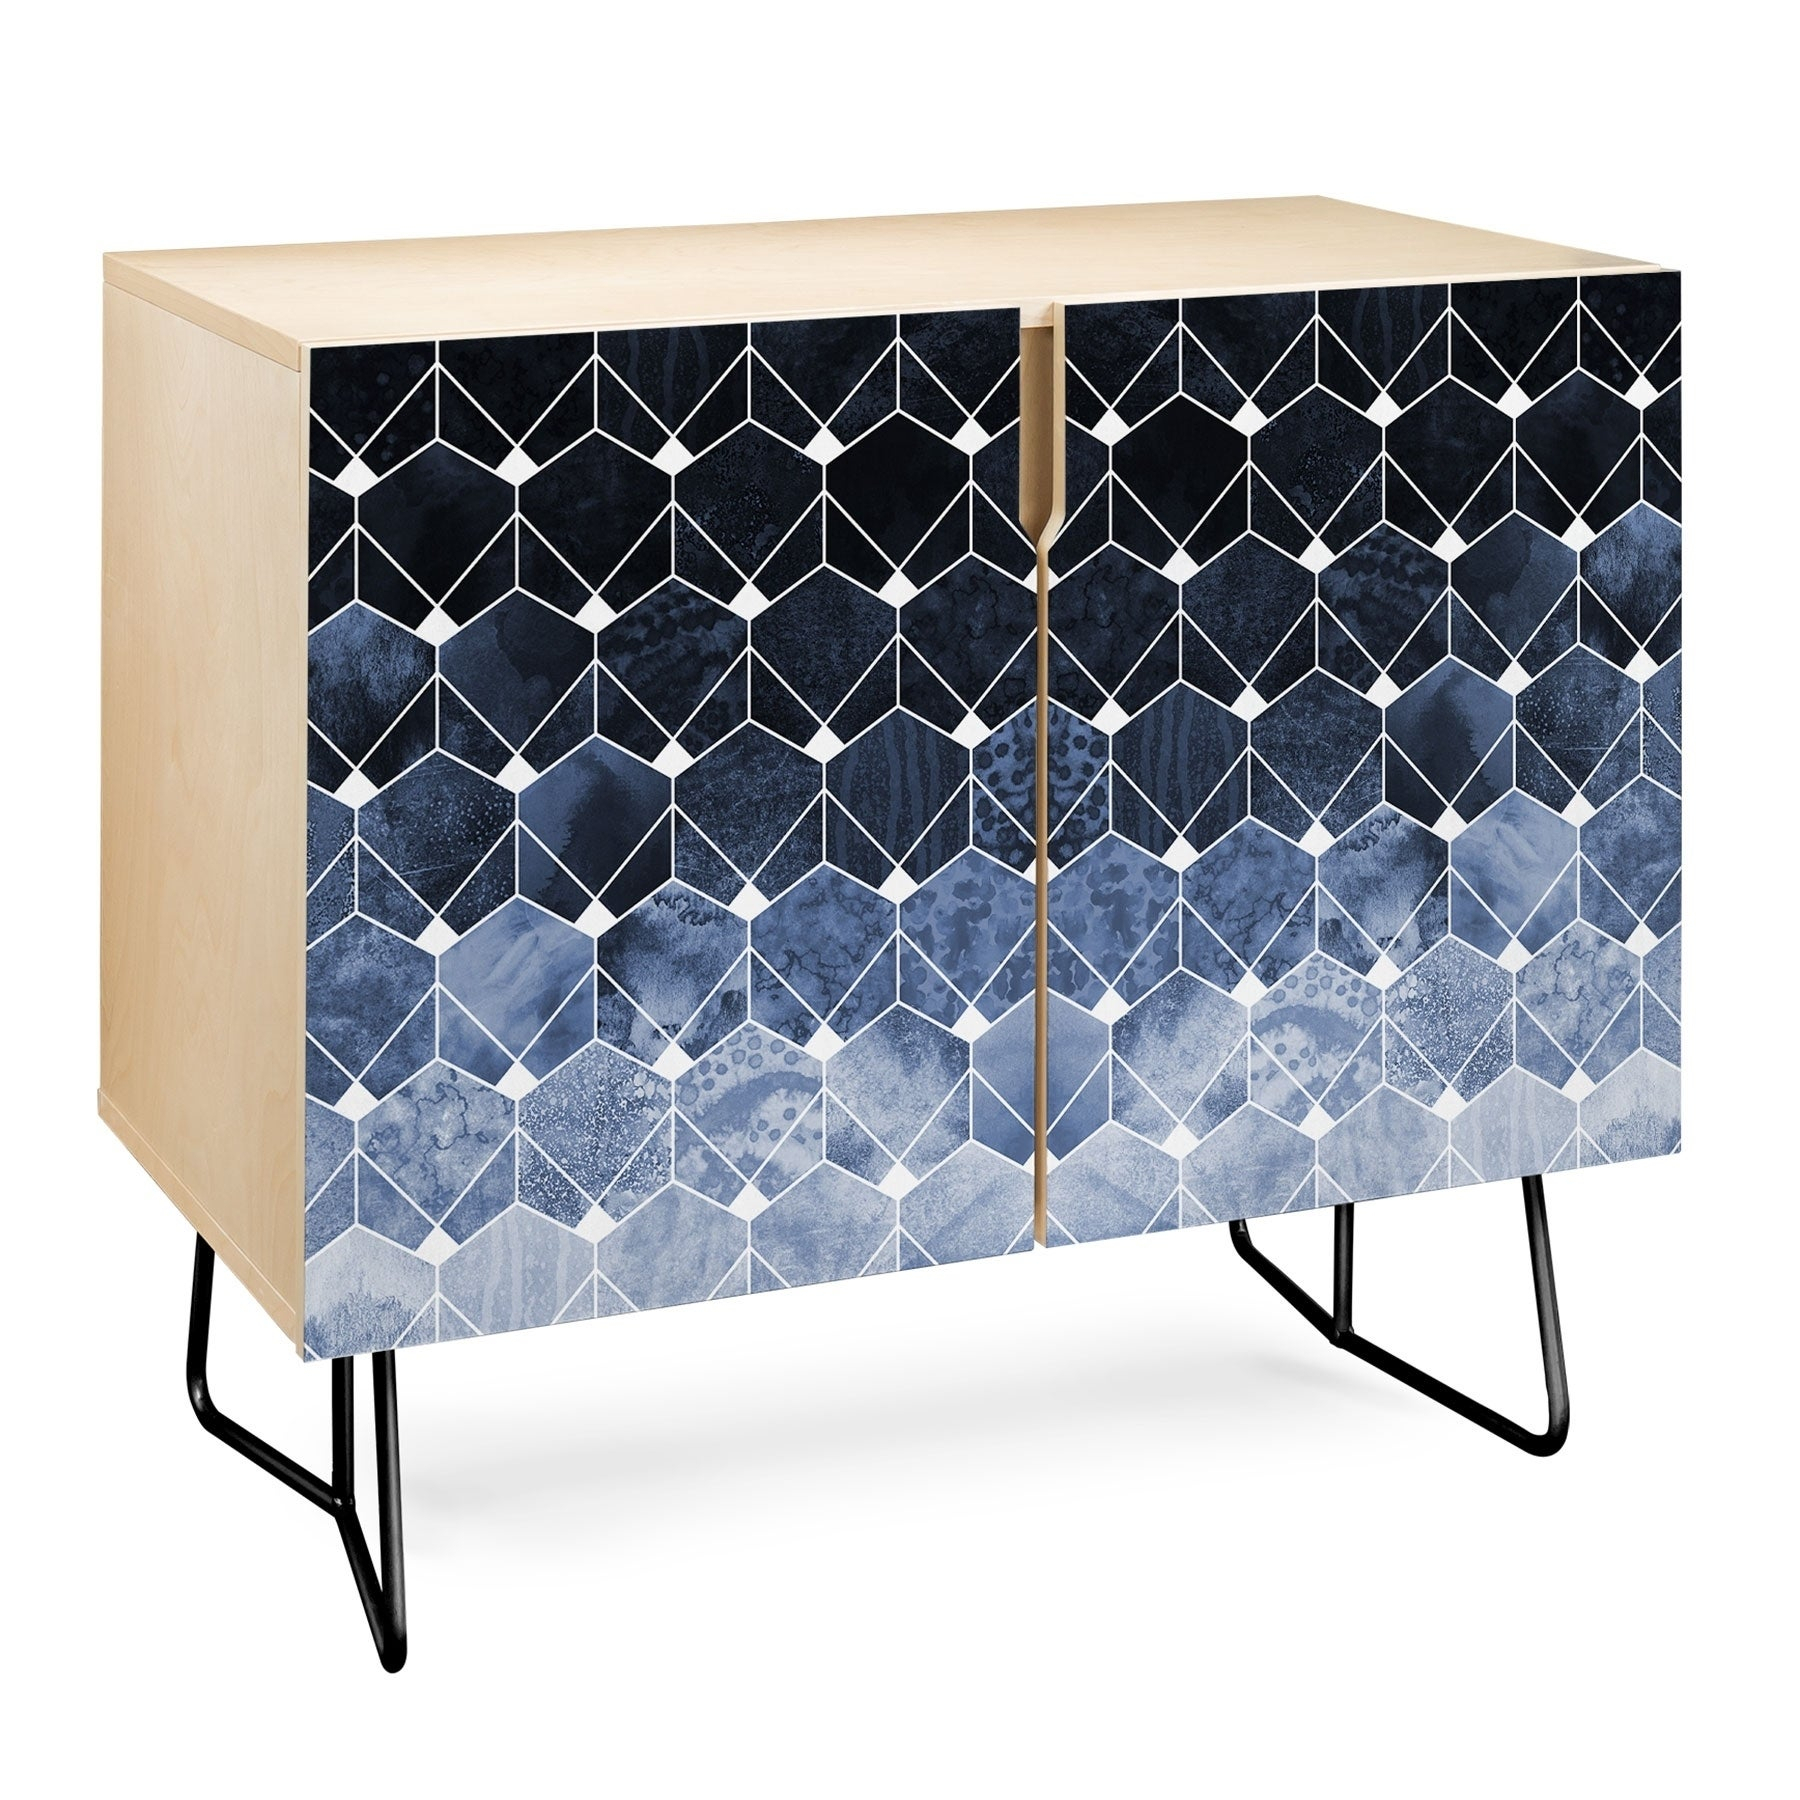 Deny Designs Blue Hexagons And Diamonds Credenza (Birch Or Walnut, 2 Leg Options) Intended For Line Geo Credenzas (View 5 of 30)